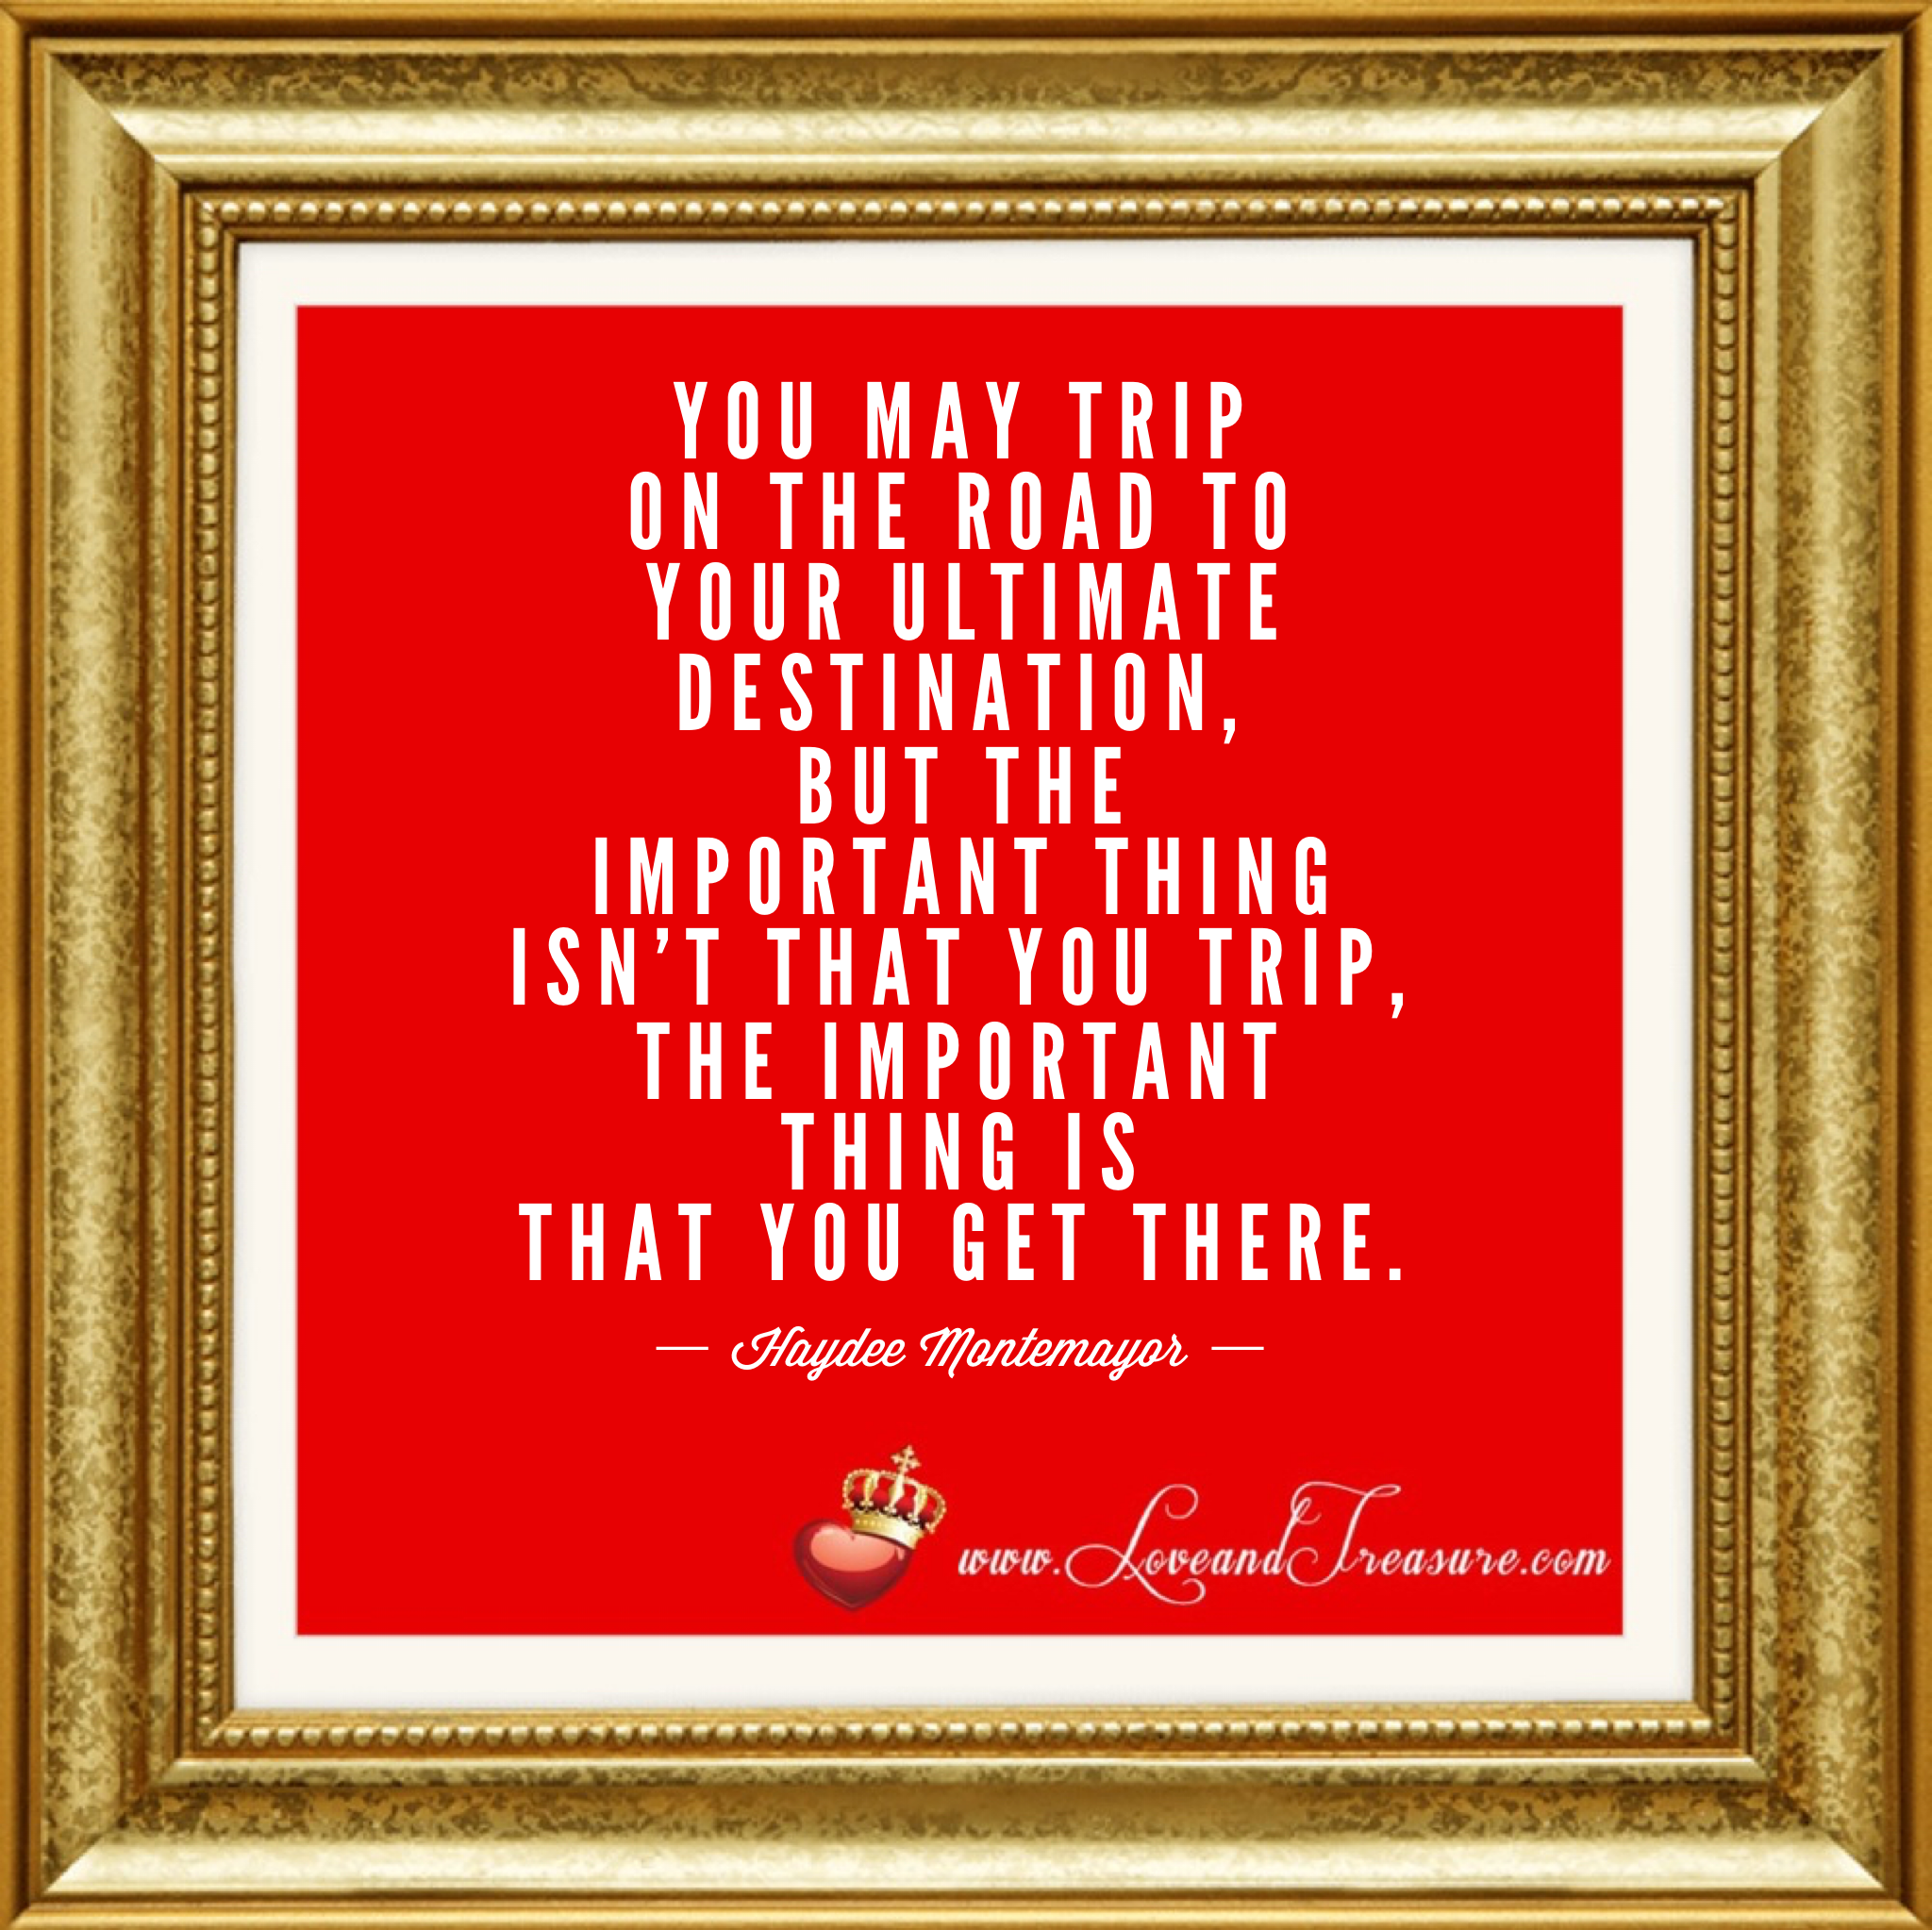 You may trip on the road to your ultimate destination, but the important thing isn't that you trip, the important thing is that you get there. by Haydee Montemayor from Love and Treasure blog